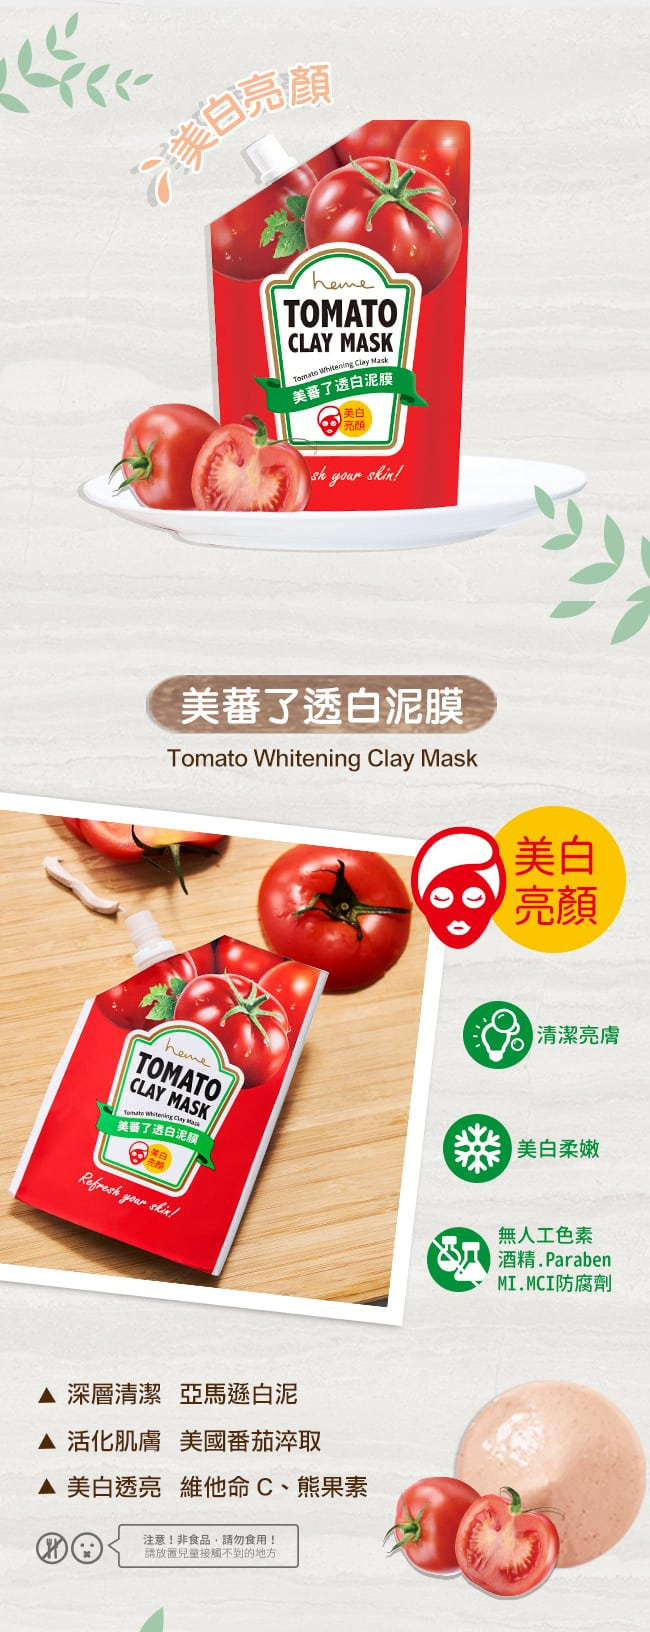 Tomato Whitening Clay Mask - Feature 3